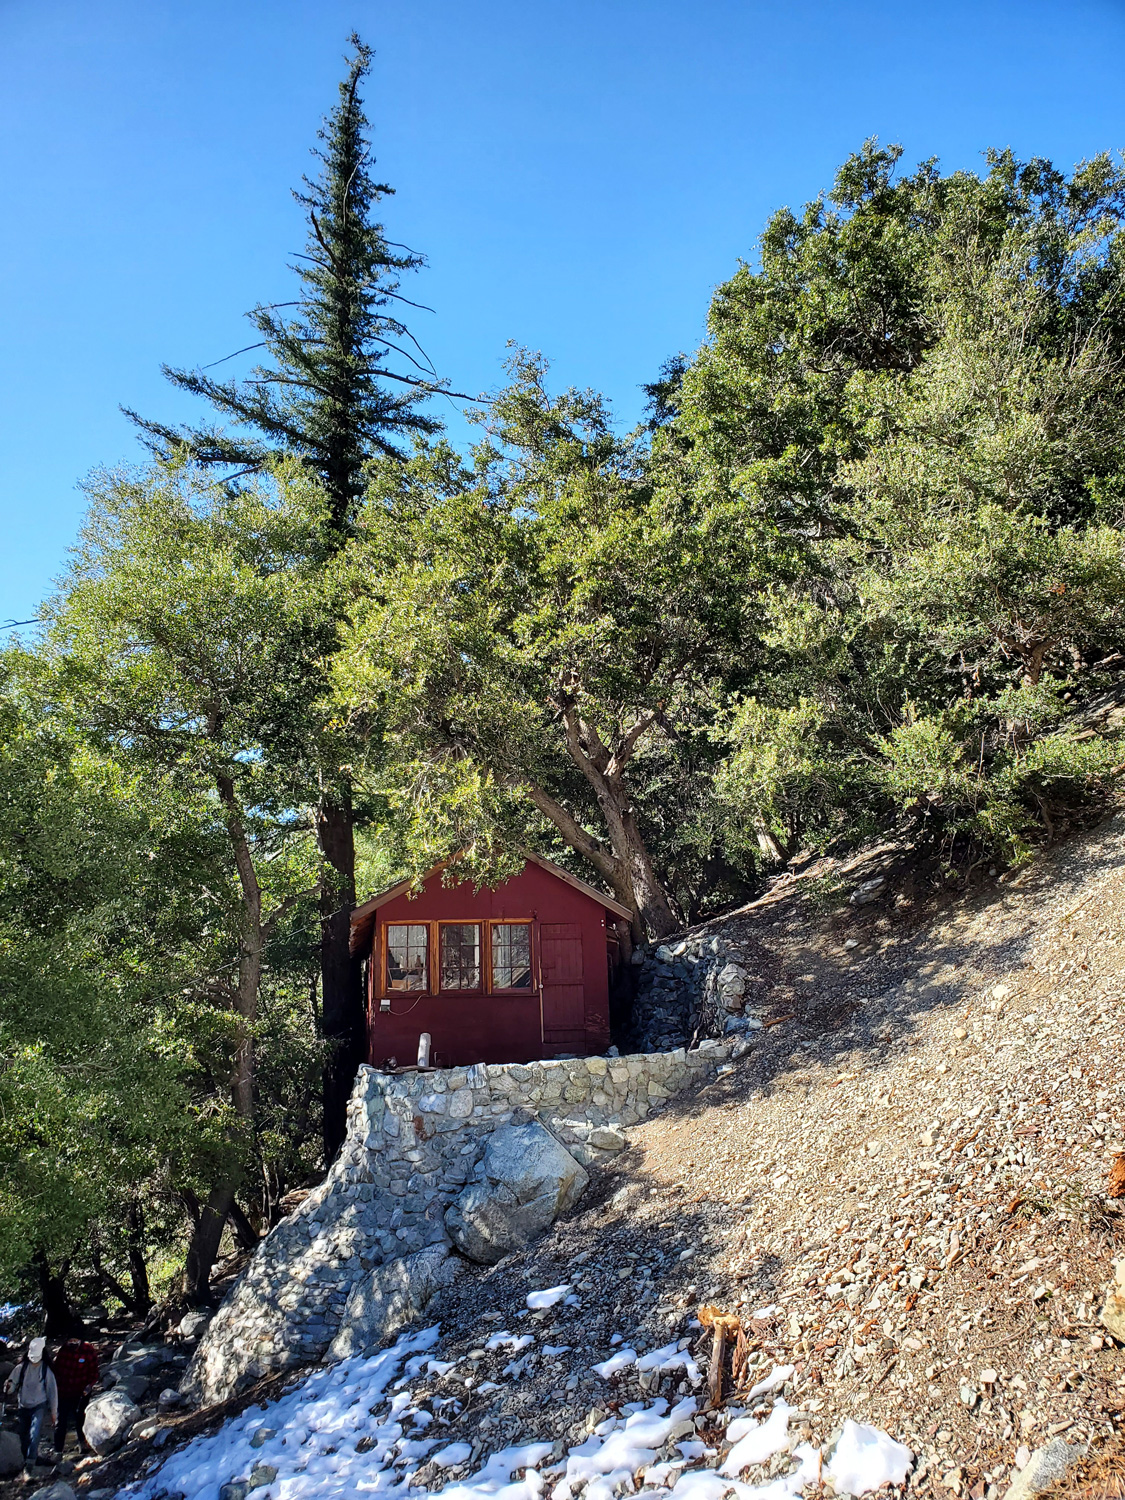 One of the red-walled cabins near the start of the Icehouse Canyon Trail